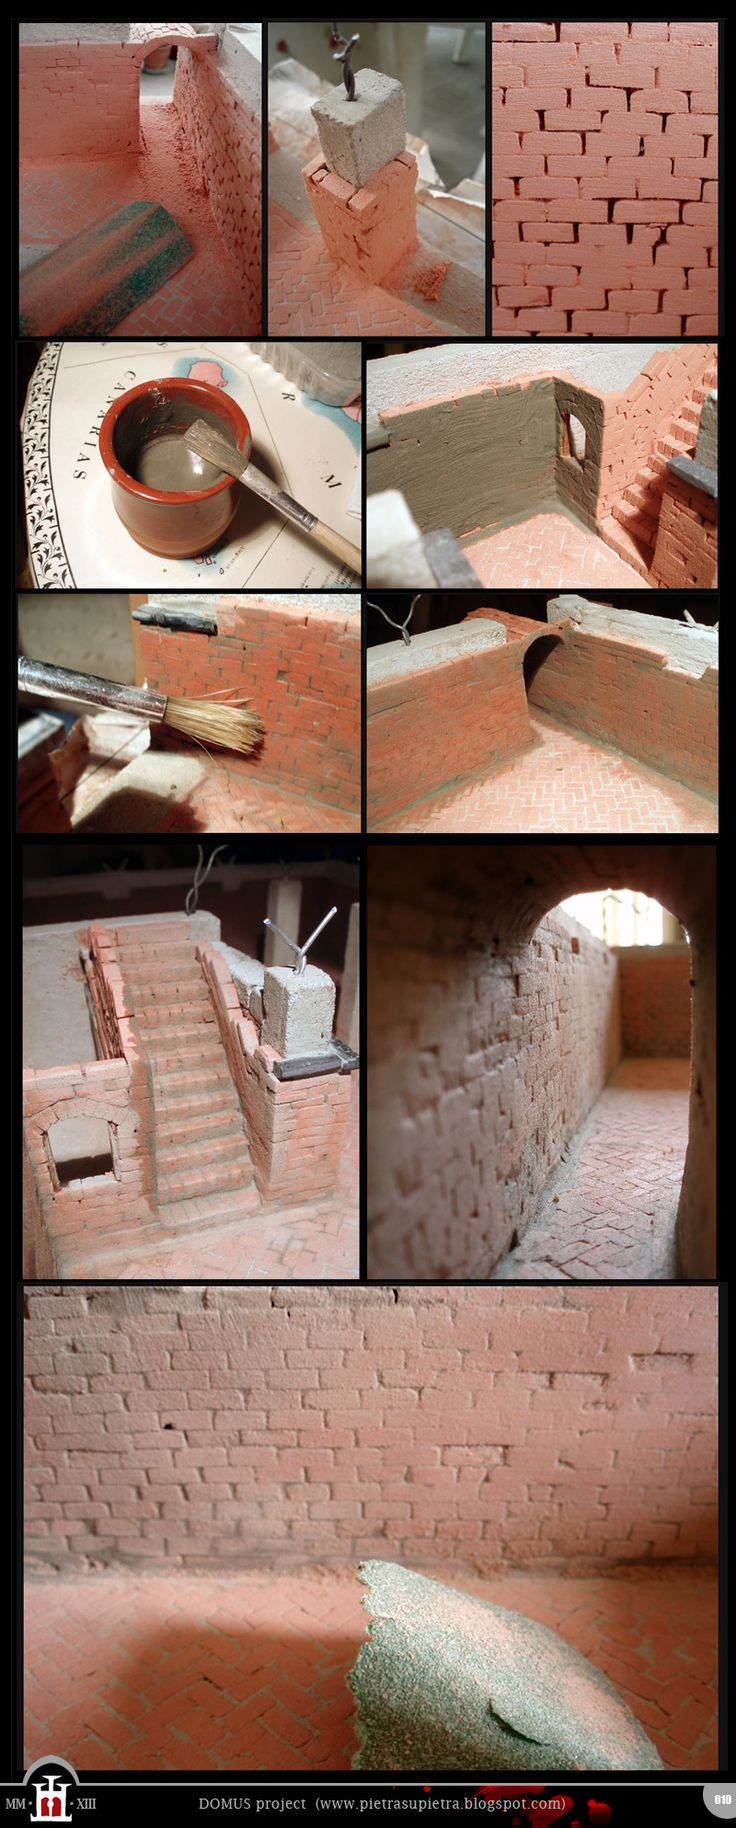 Domus project 10: Brick walls (part II) http://pietrasupietra.blogspot.com/2012/01/construction-10-brick-walls-2.html